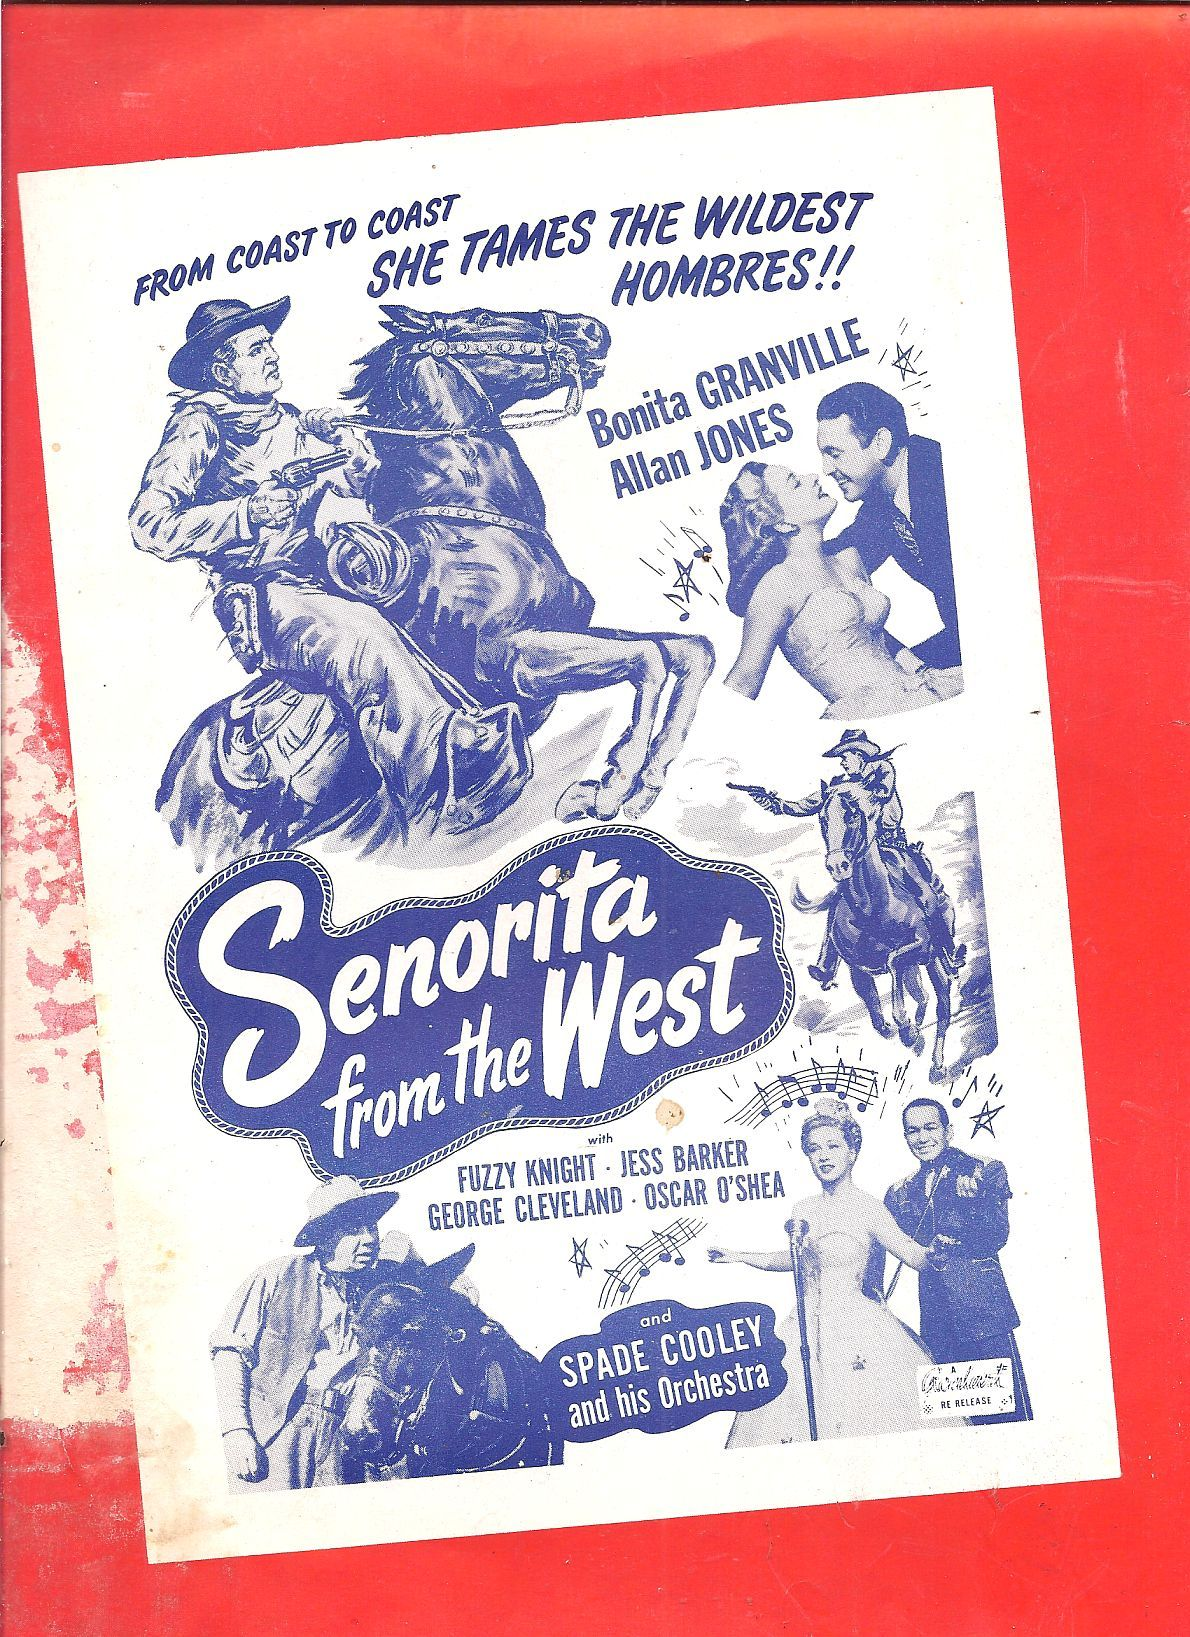 Spade Cooley, Bonita Granville, Allan Jones, and Fuzzy Knight in Senorita from the West (1945)